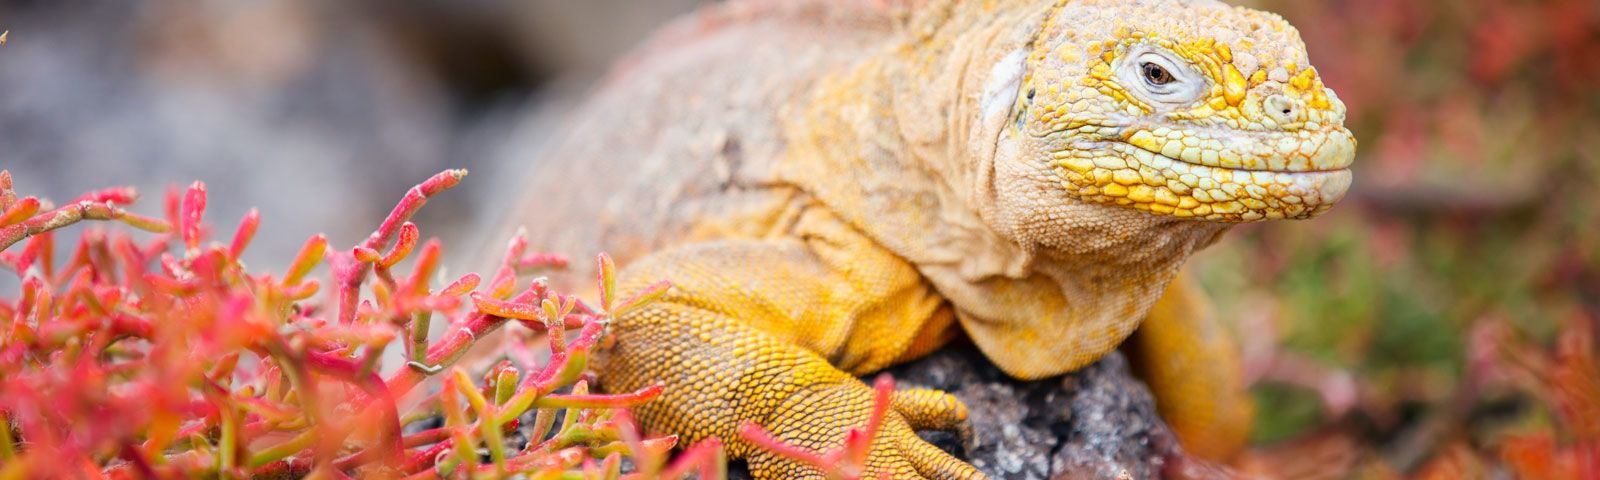 cruise to the galapagos islands